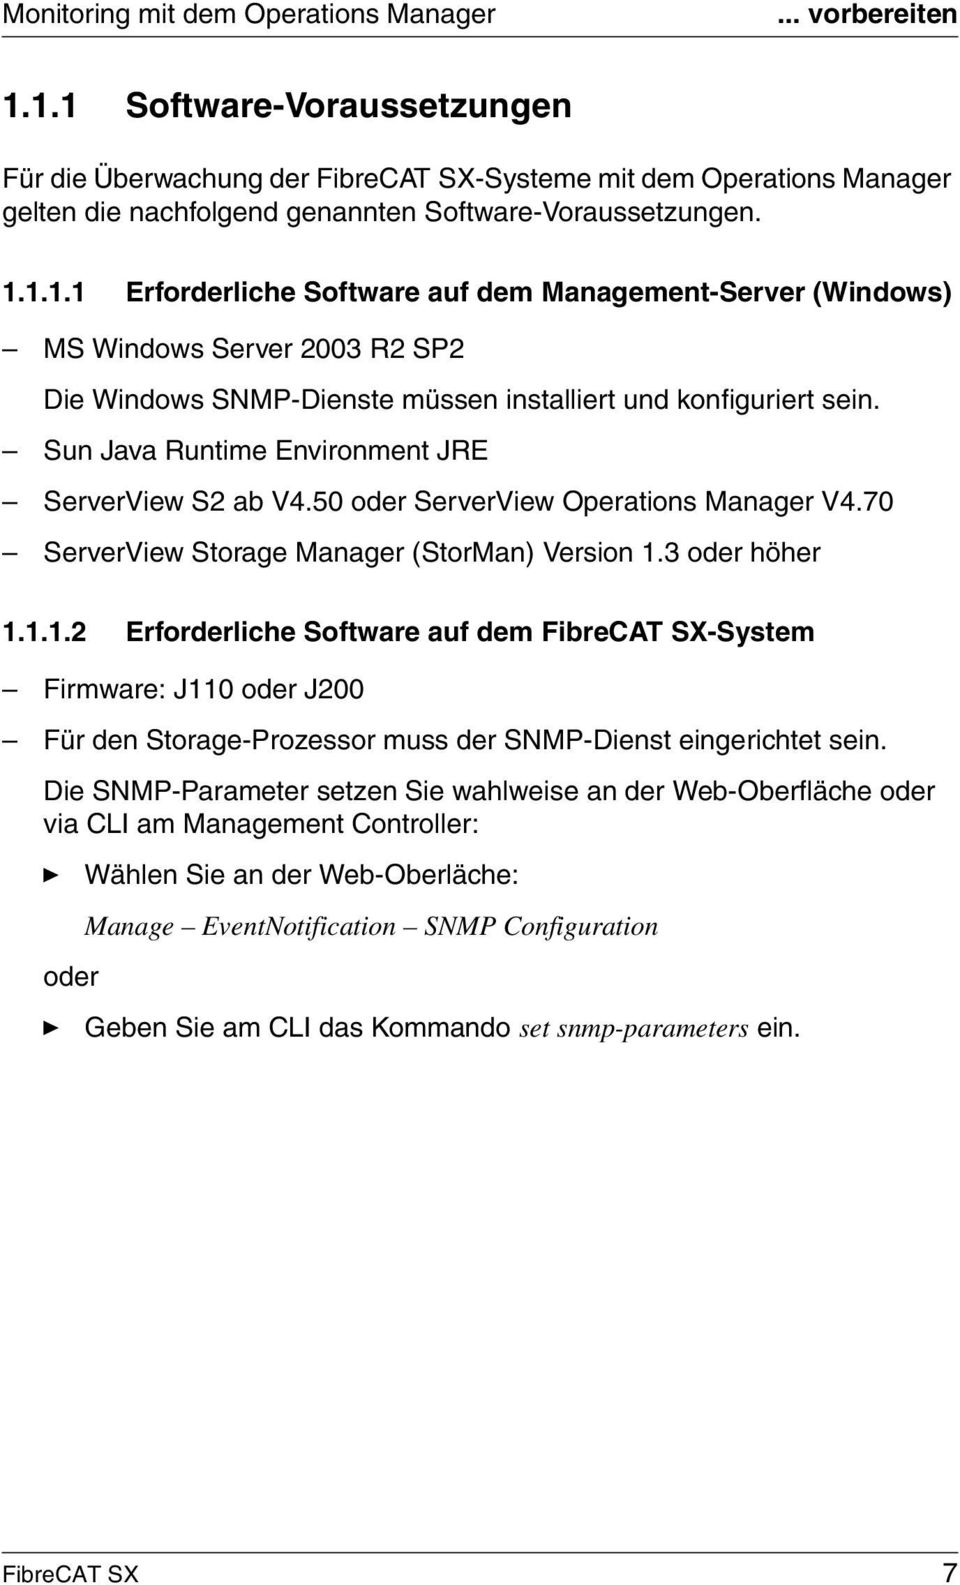 Sun Java Runtime Environment JRE ServerView S2 ab V4.50 oder ServerView Operations Manager V4.70 ServerView Storage Manager (StorMan) Version 1.